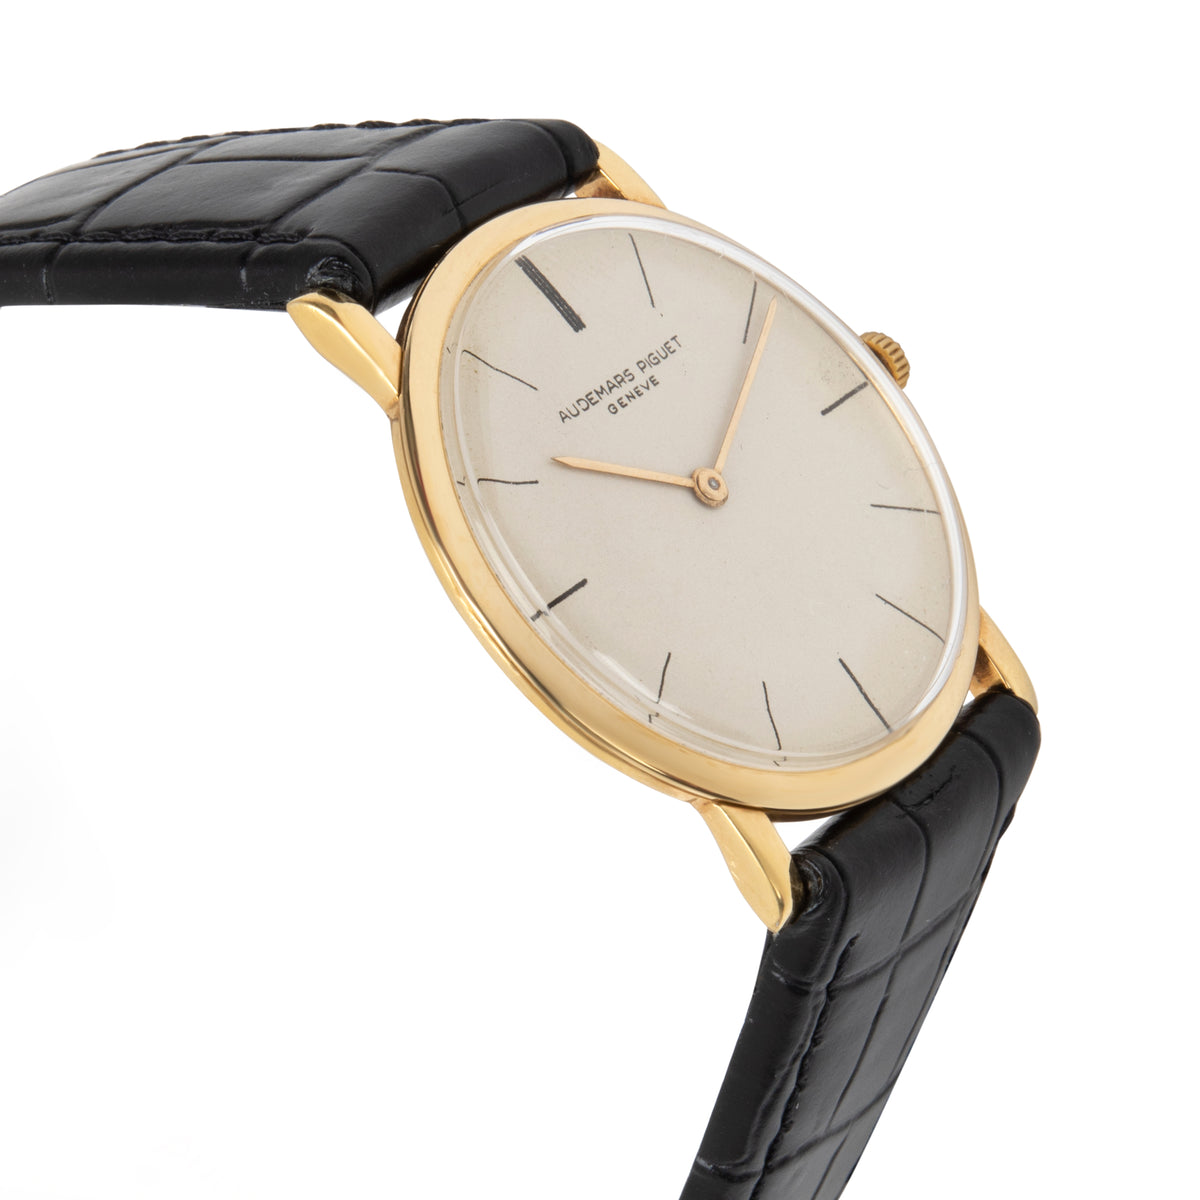 Audemars Piguet Classique Classique Unisex Watch in 18kt Yellow Gold